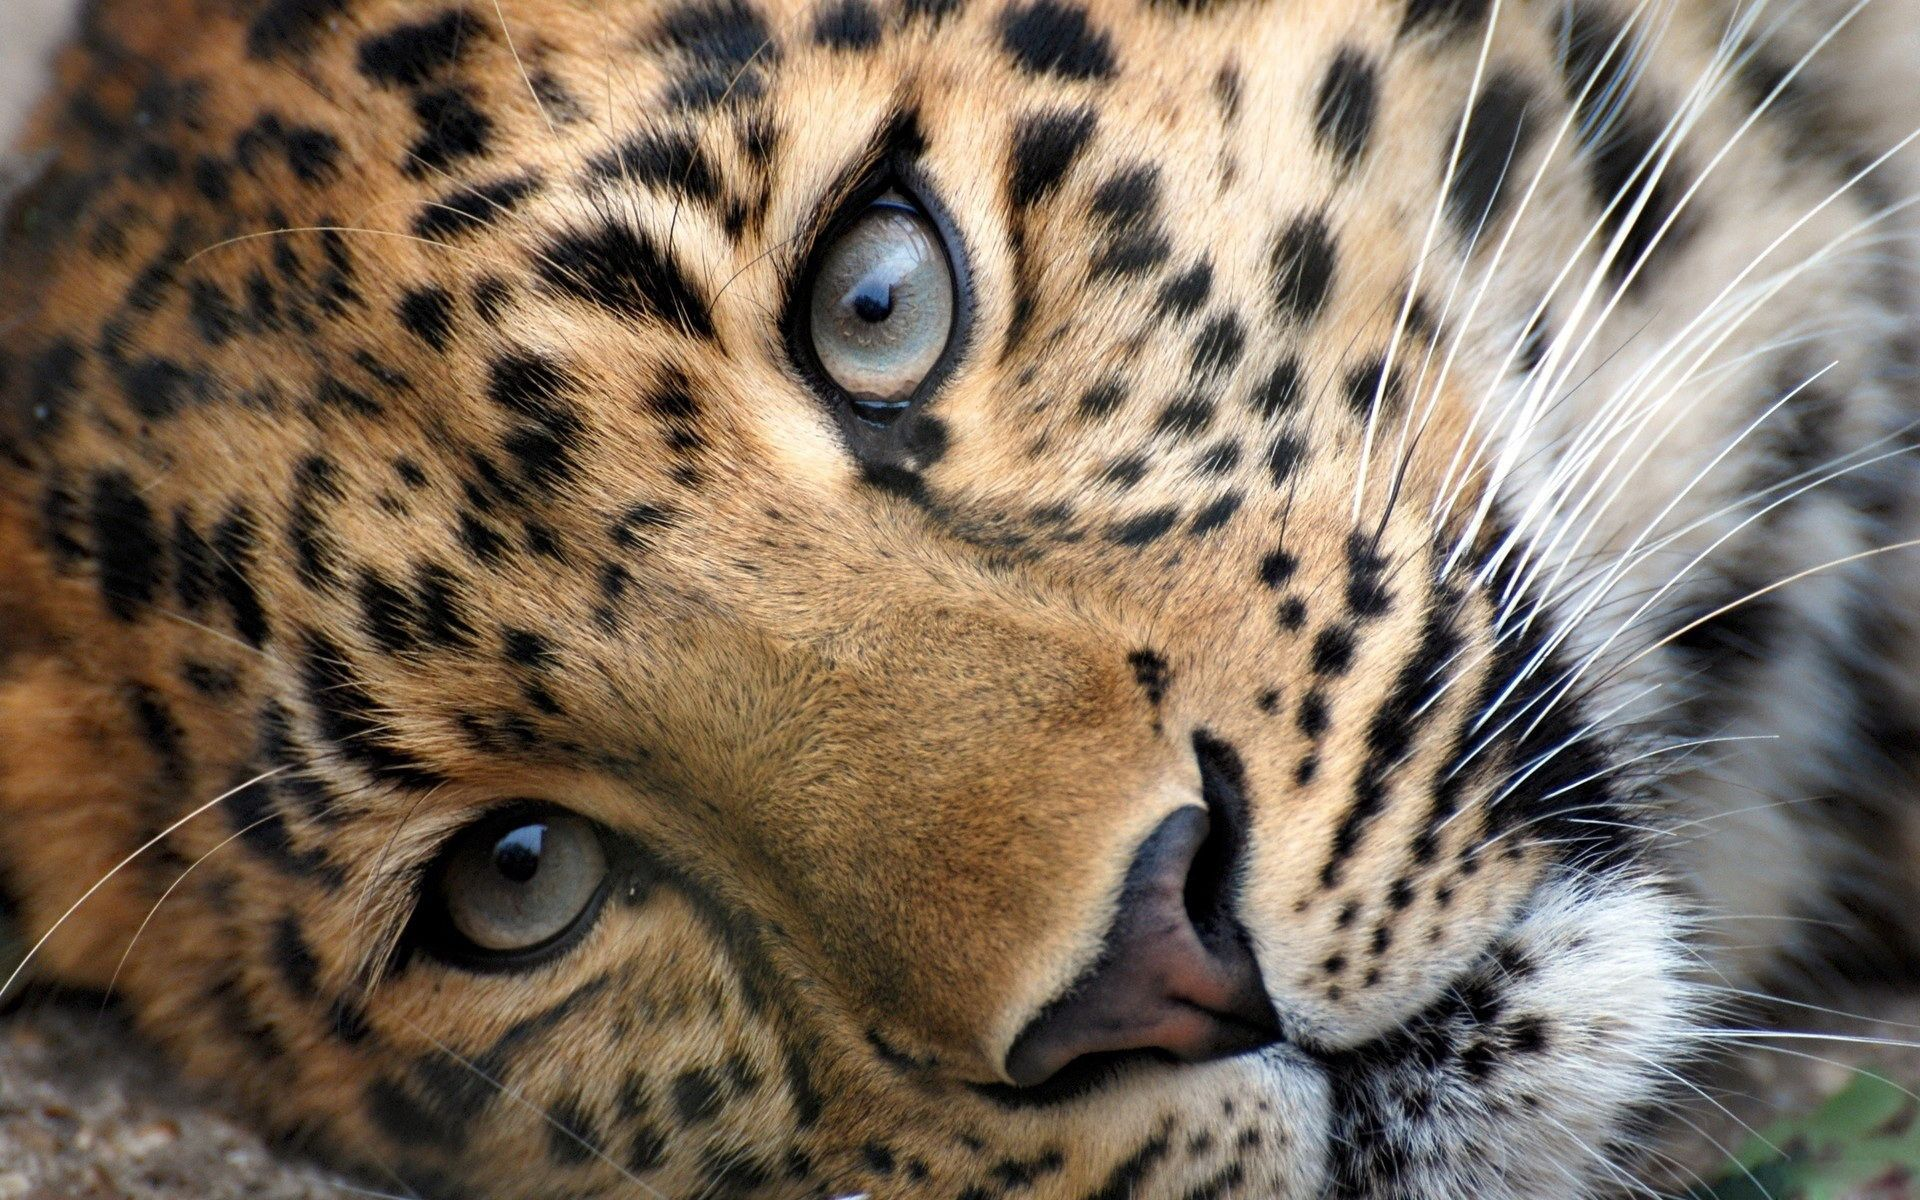 Big Cats Wild Animal Wallpaper Leopard Wallpaper Cheetah Wallpaper